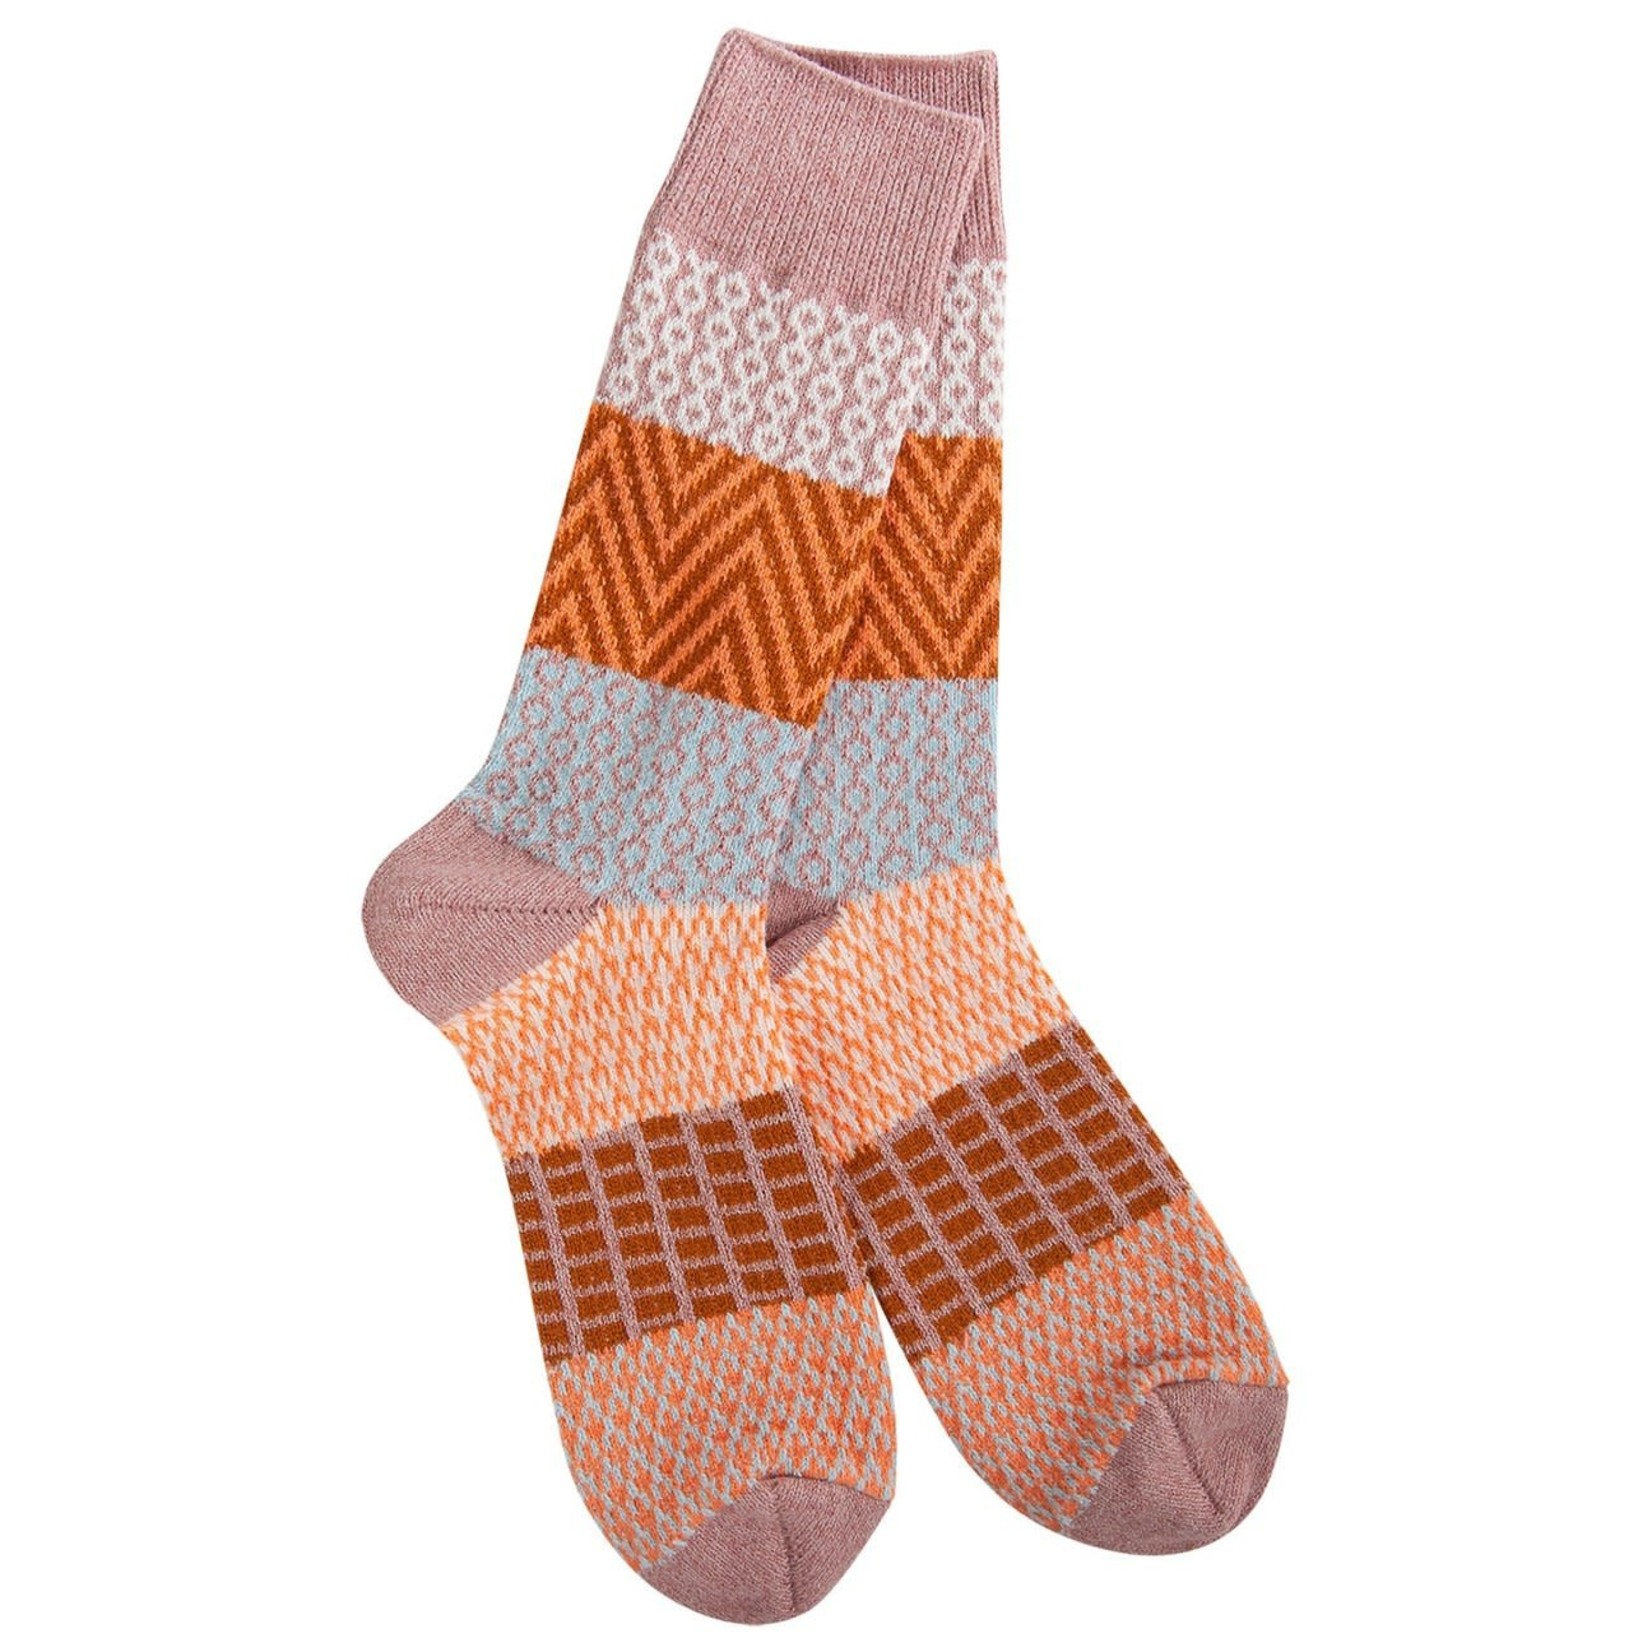 World's Softest Weekend Gallery Crew Socks- Tranquility